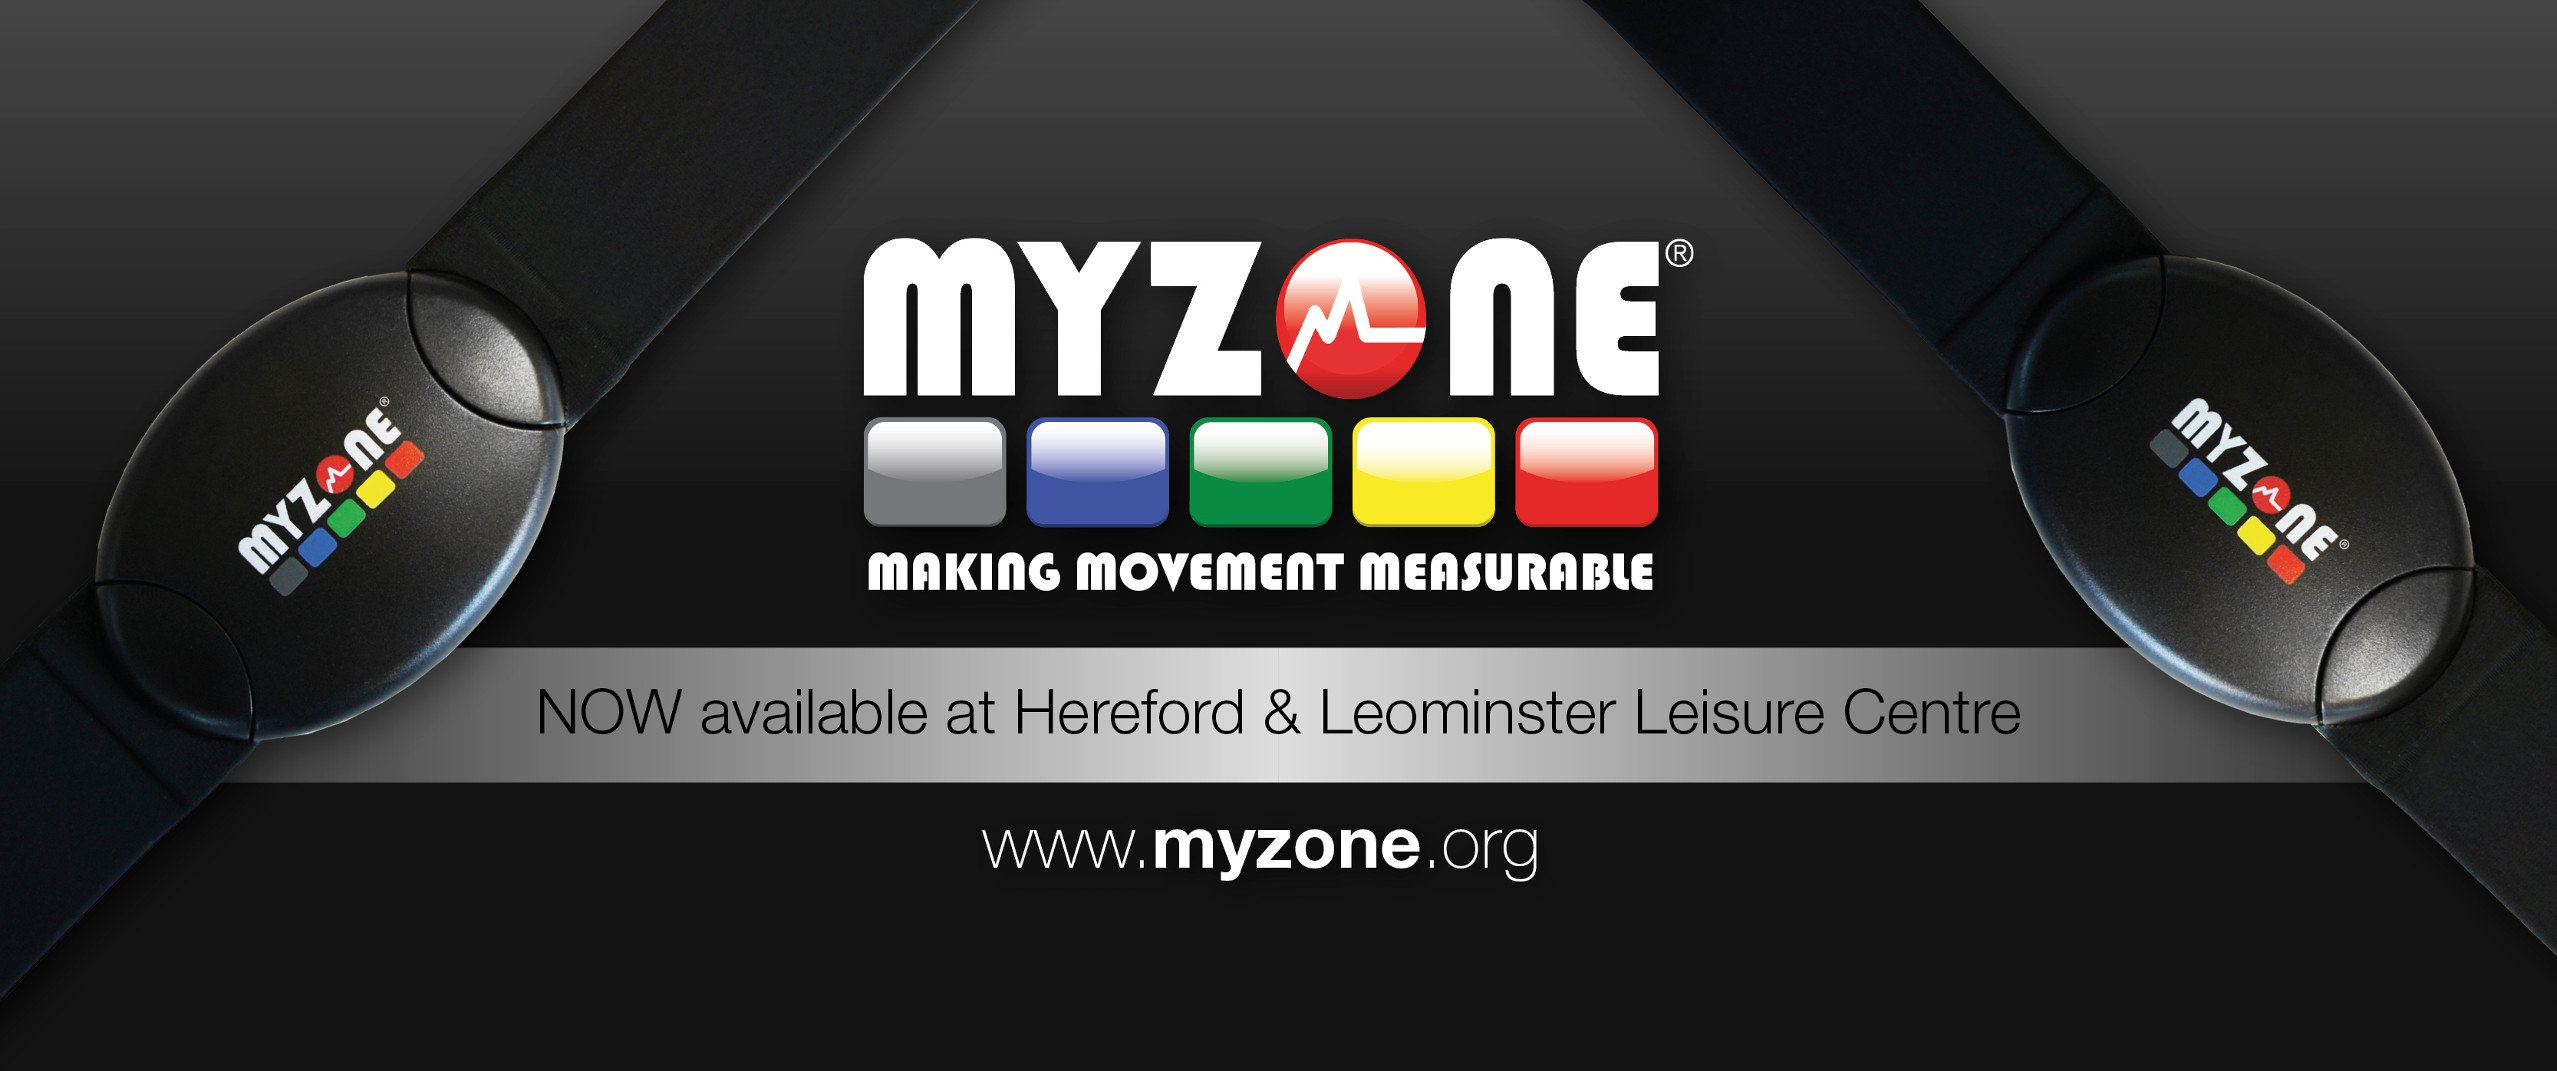 MYZONE - making movement measureable